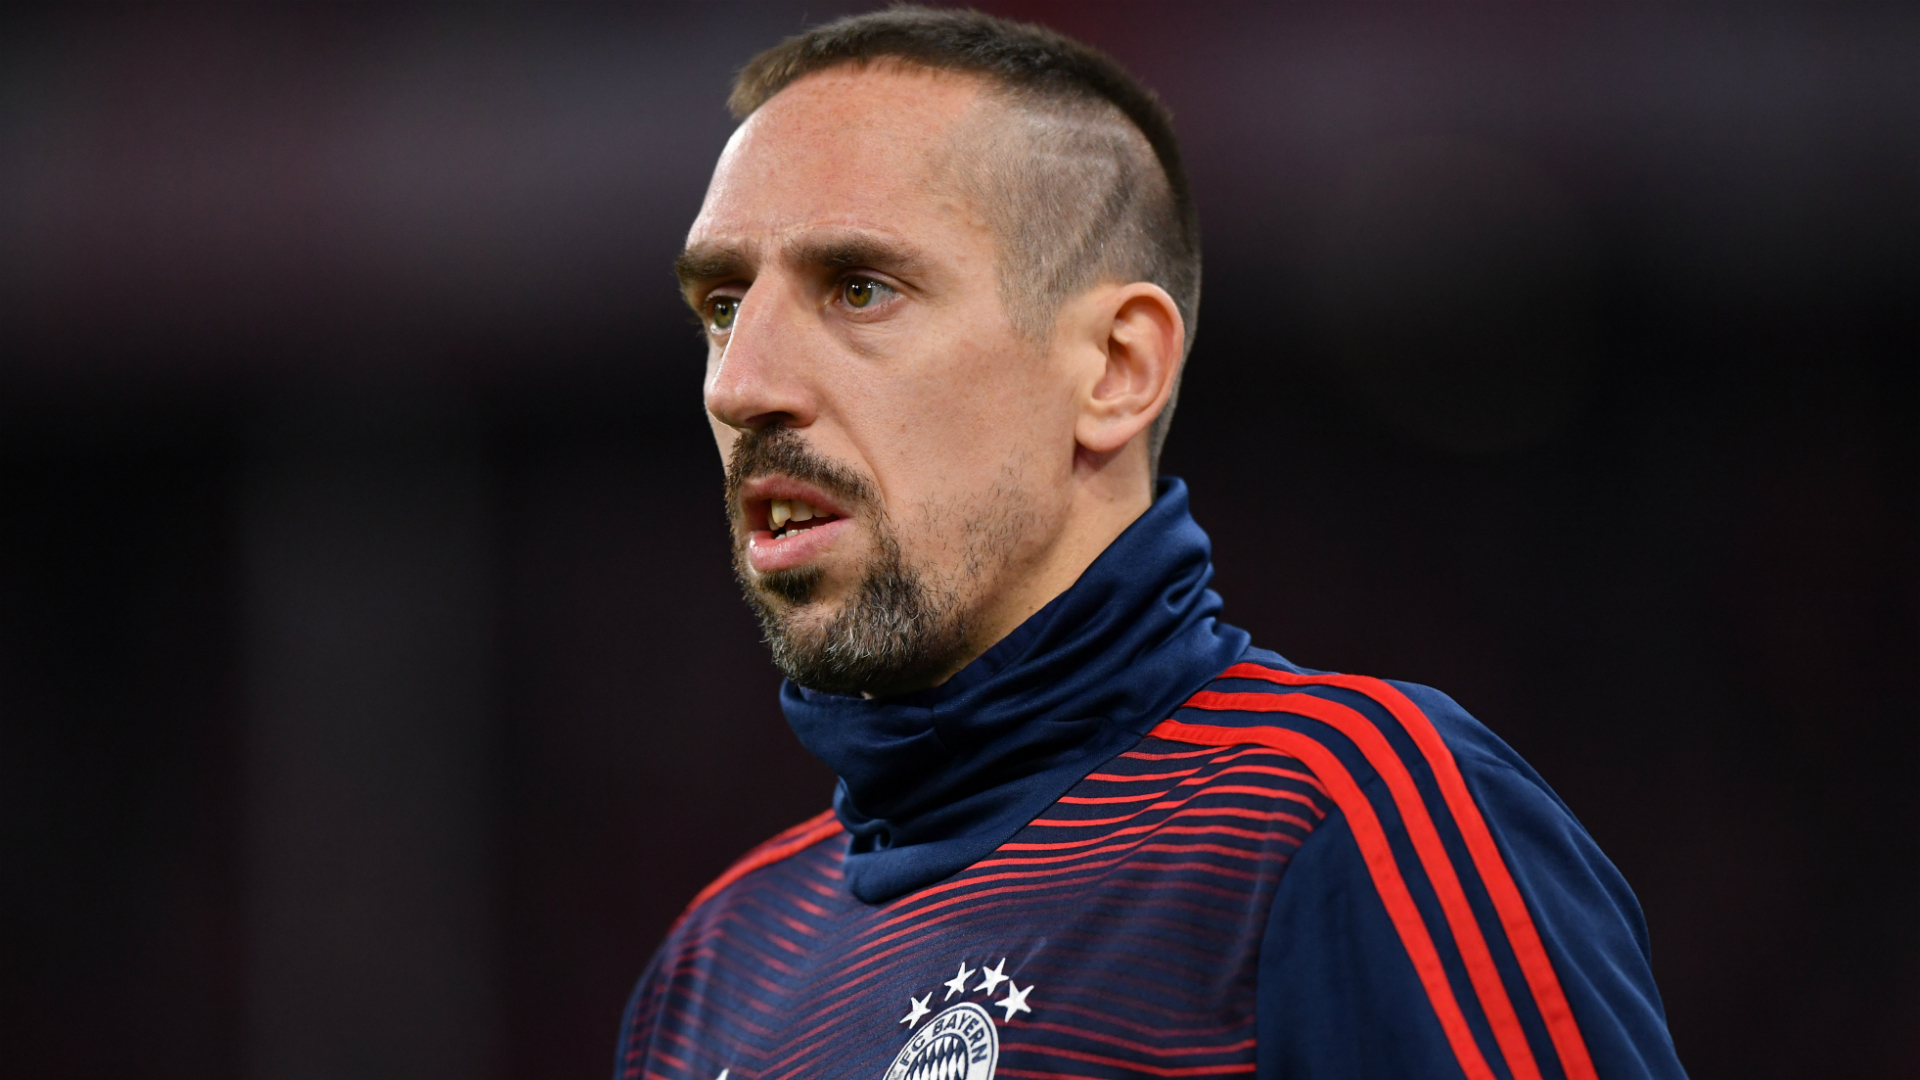 Ribery future up in the air, says Bayern CEO Rummenigge